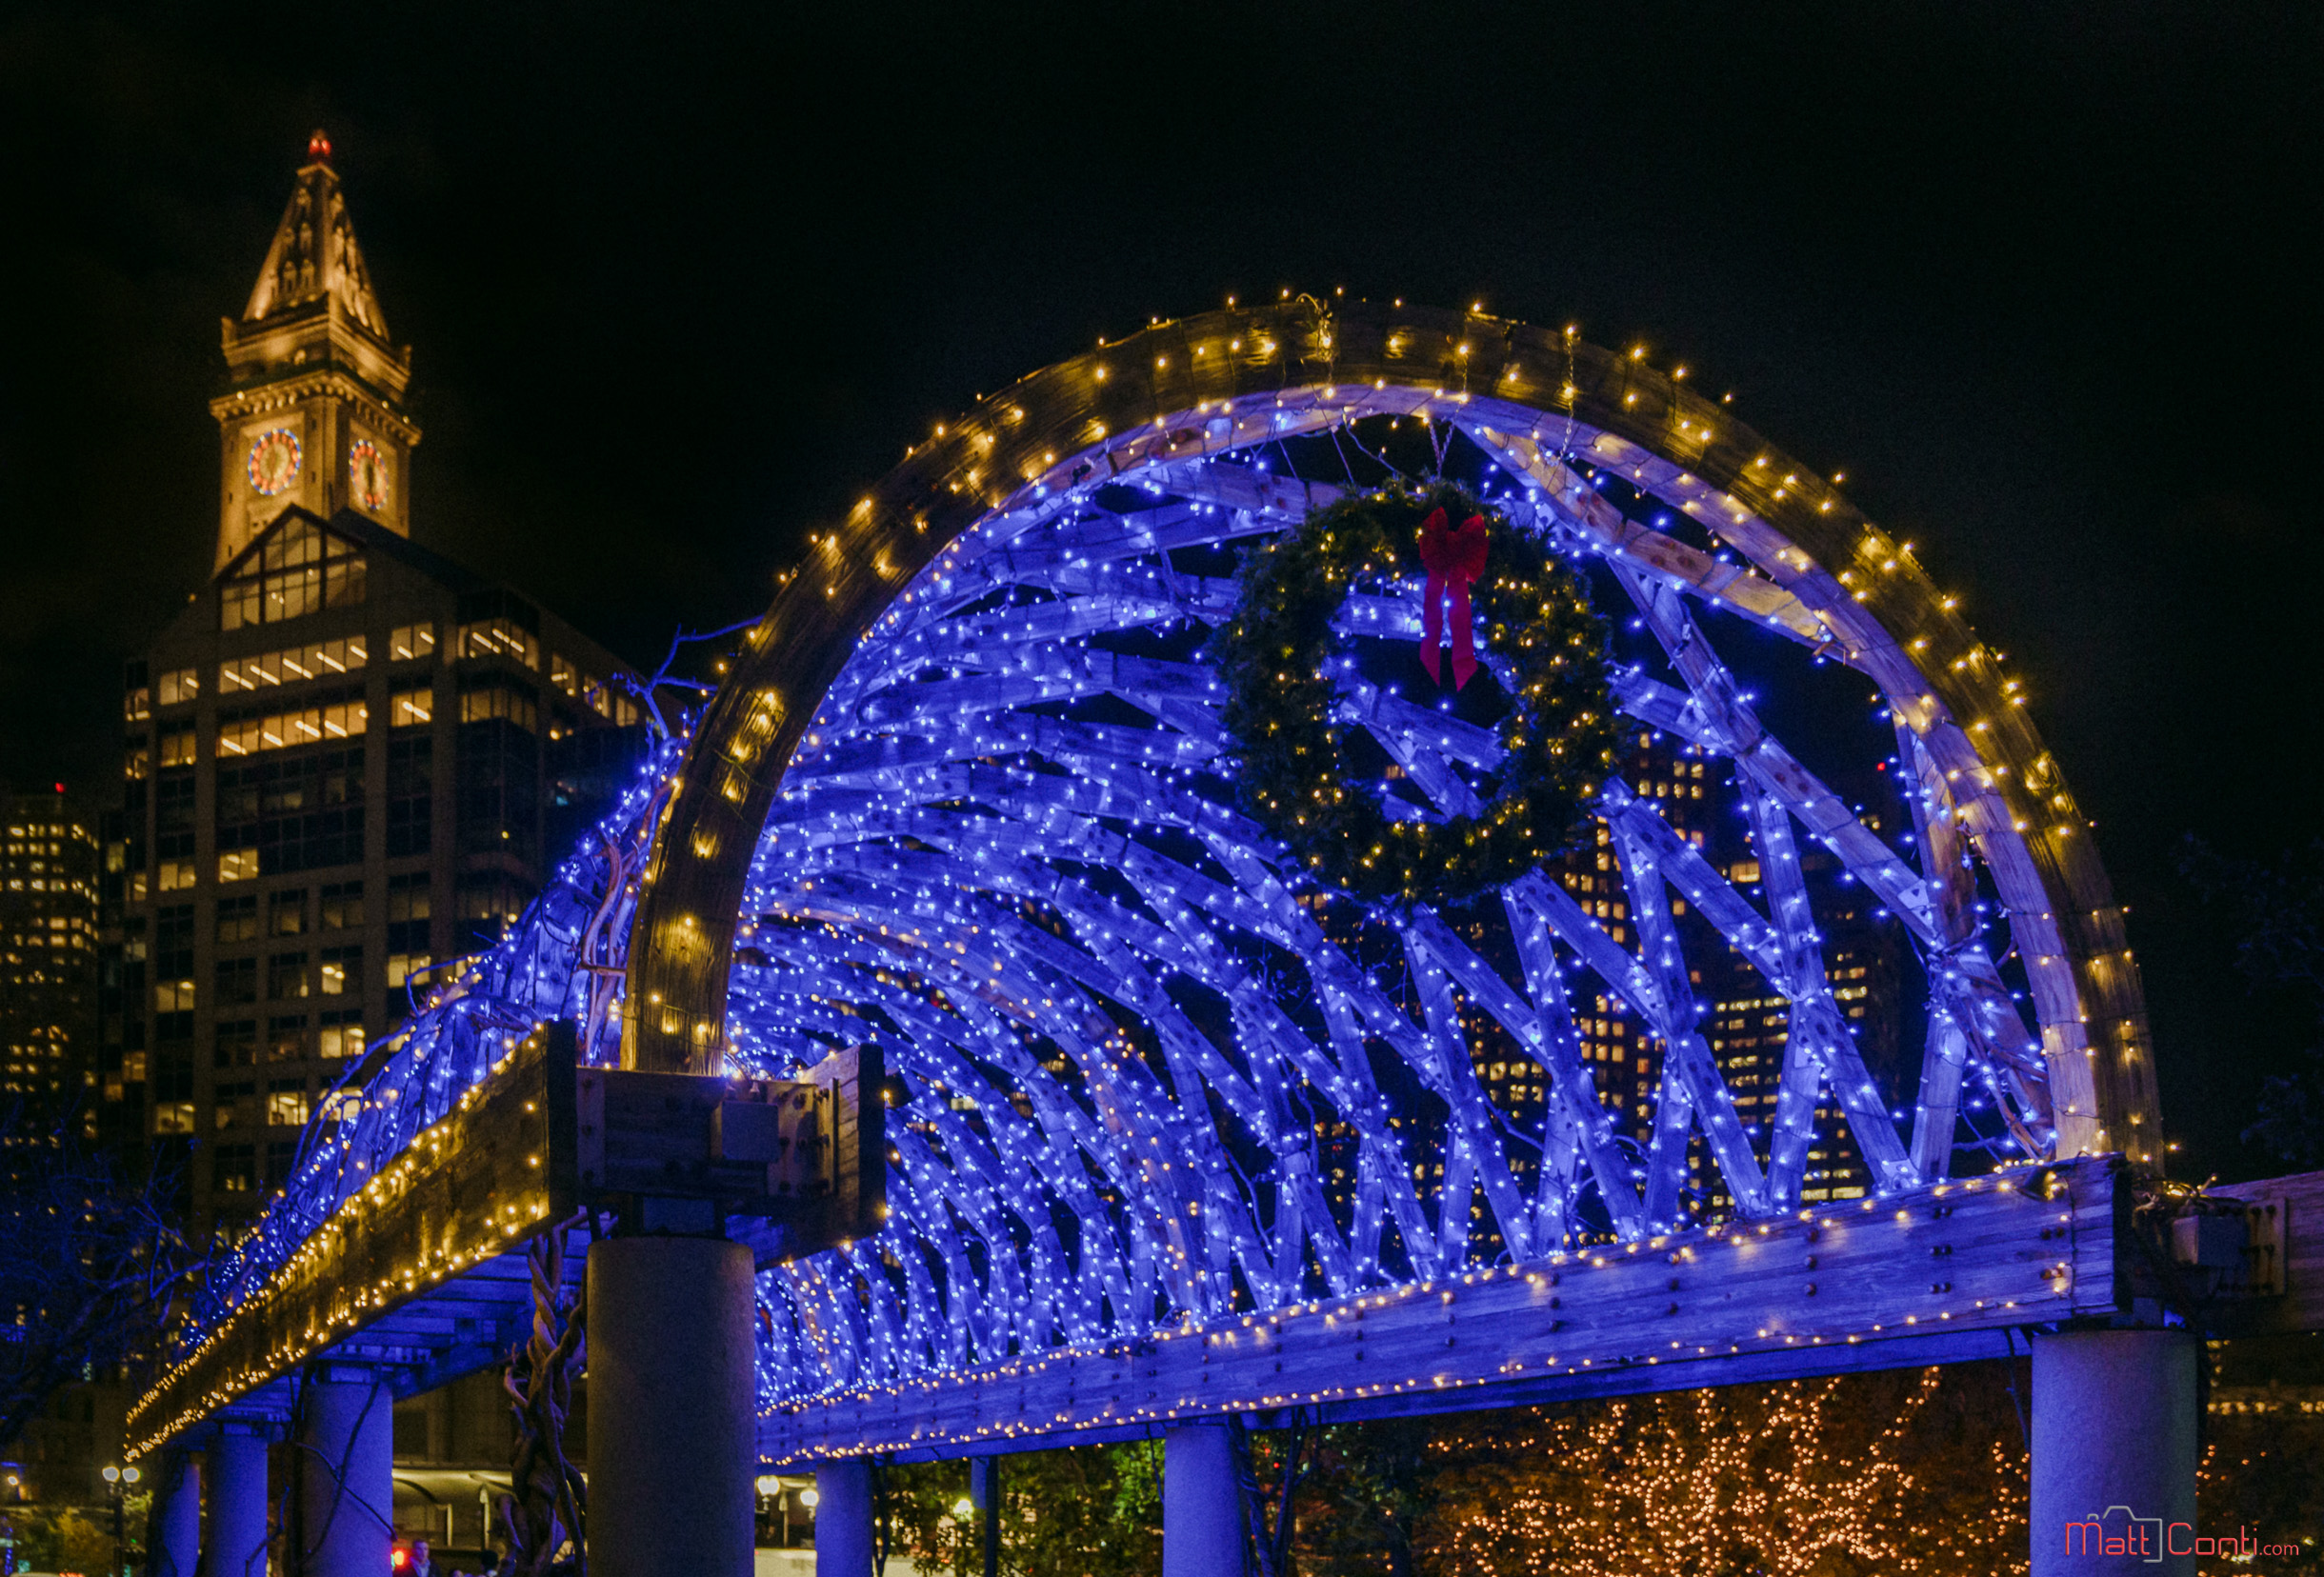 holiday trellis lighting draws thousands to columbus park on